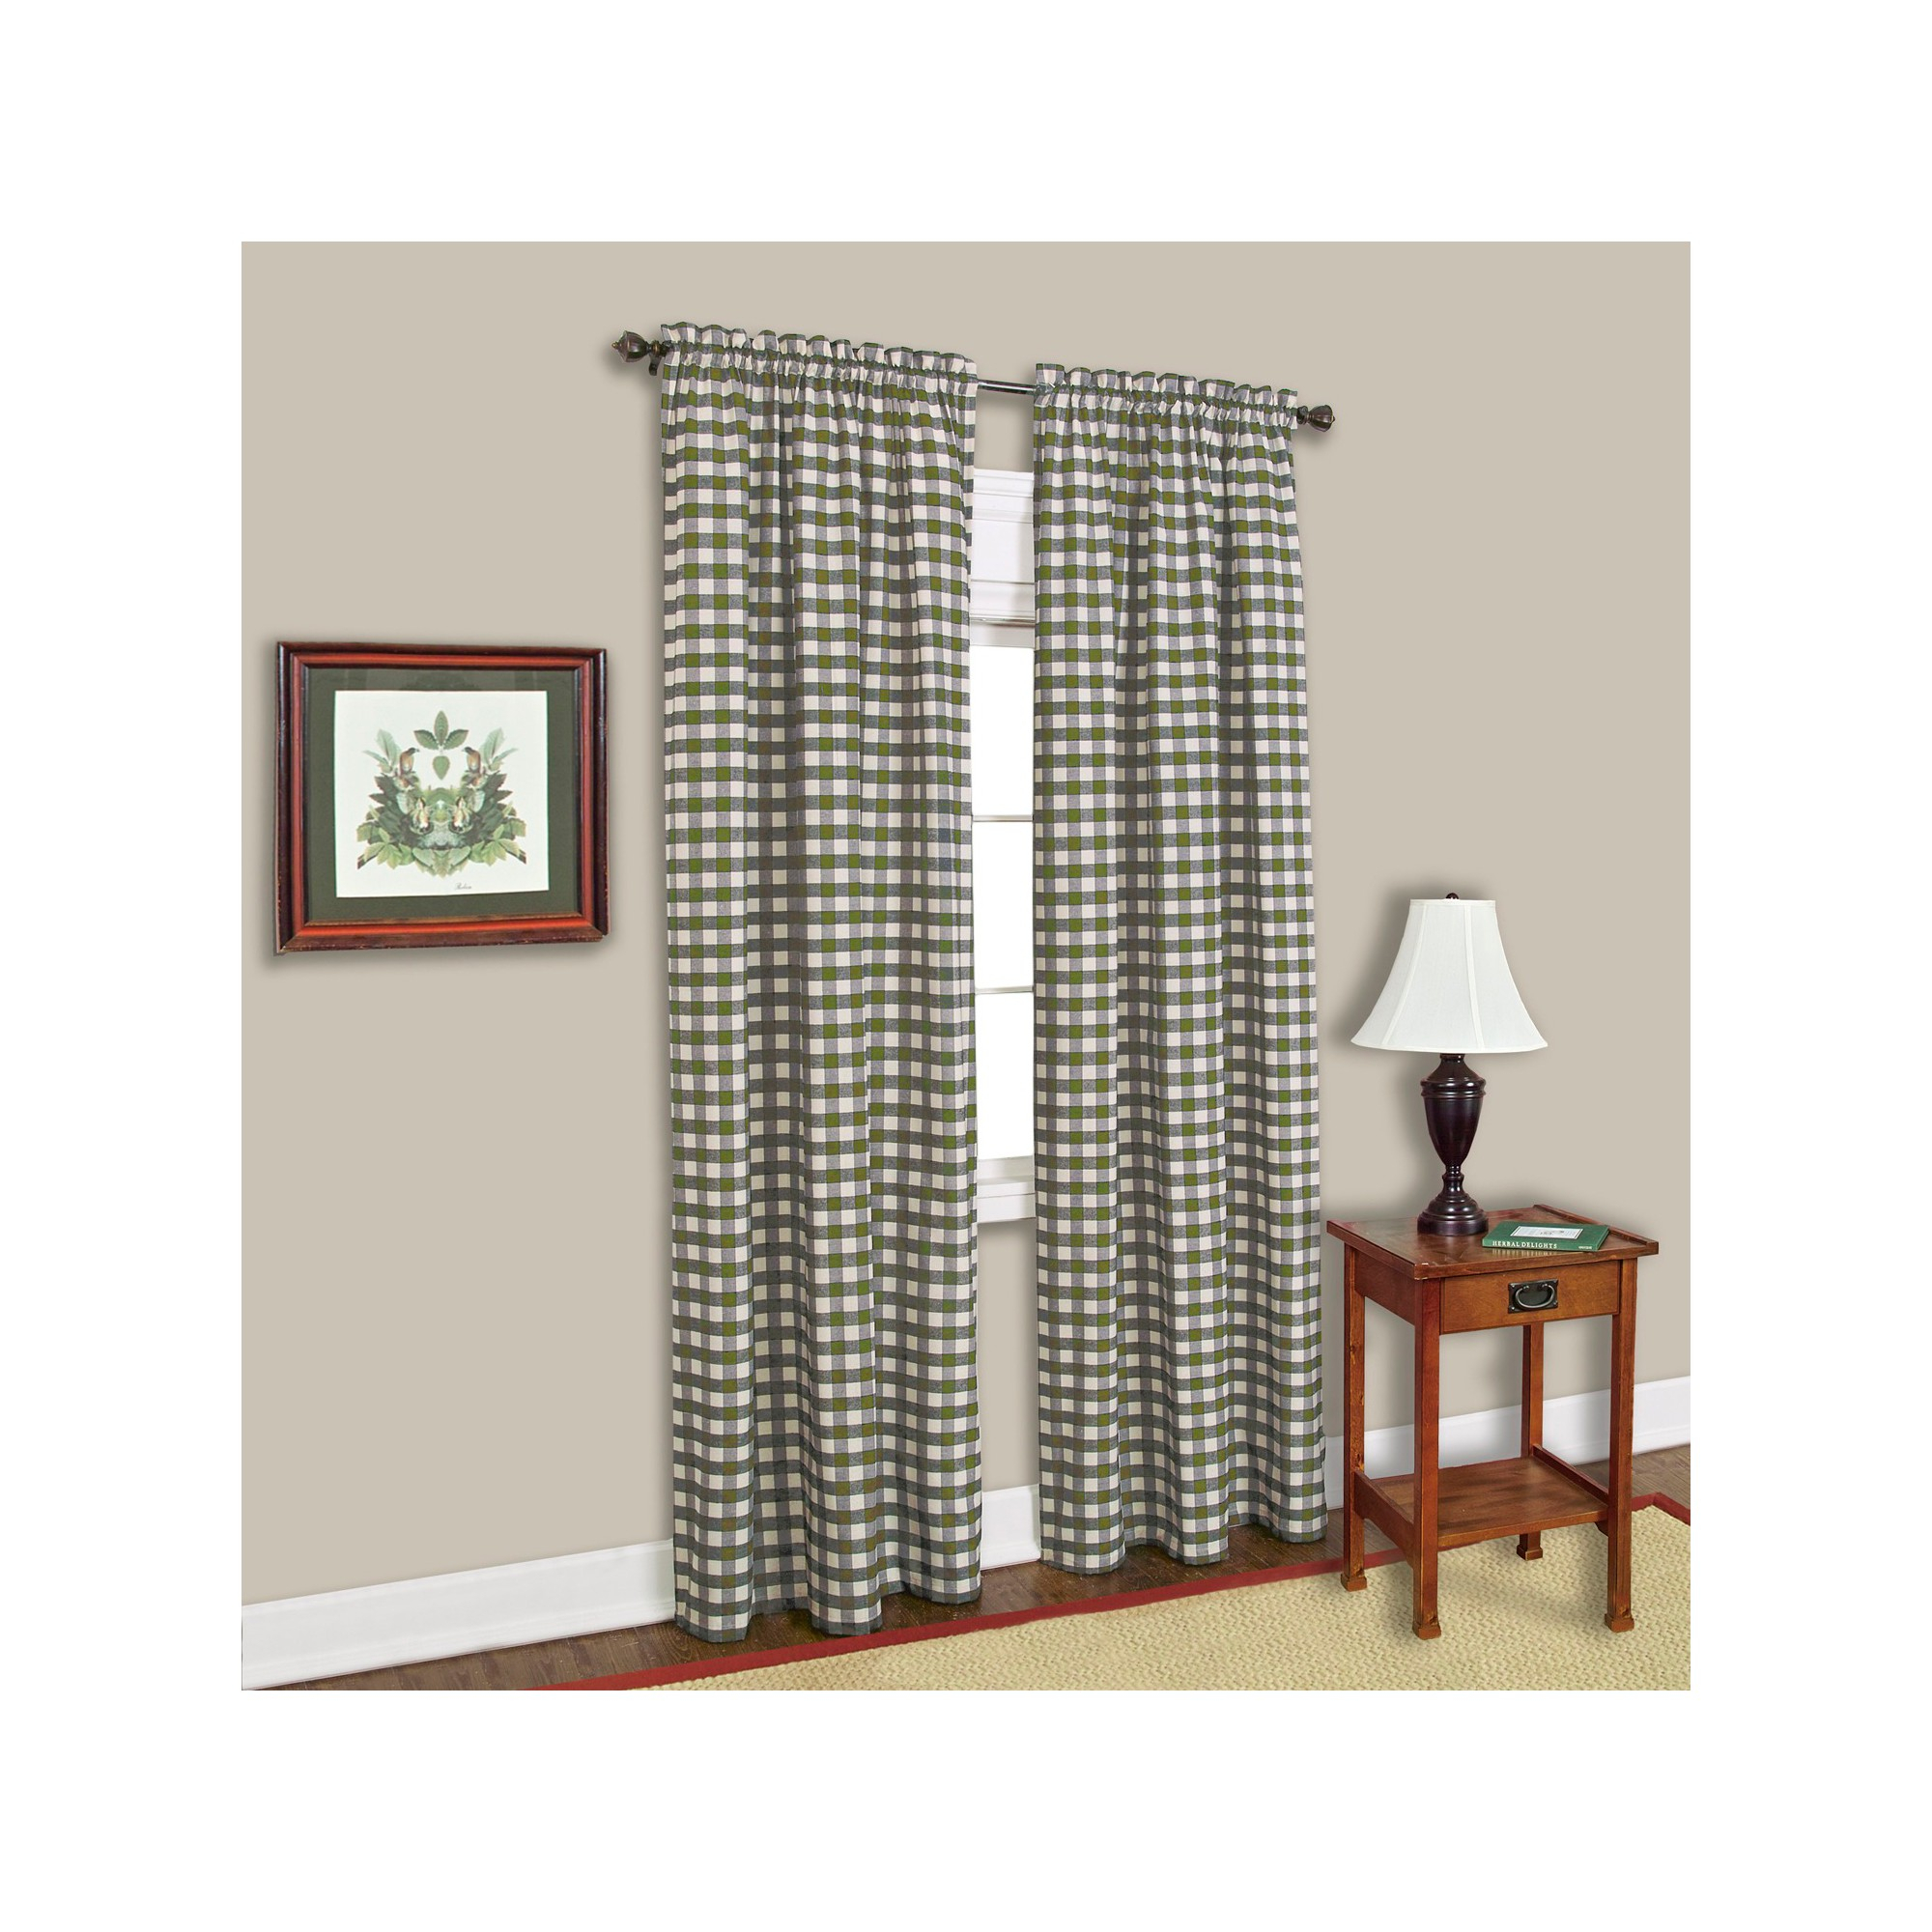 "Buffalo Check Curtain Panel – Sage (42"" X 84""), Green Pertaining To Grainger Buffalo Check Blackout Window Curtains (View 8 of 20)"